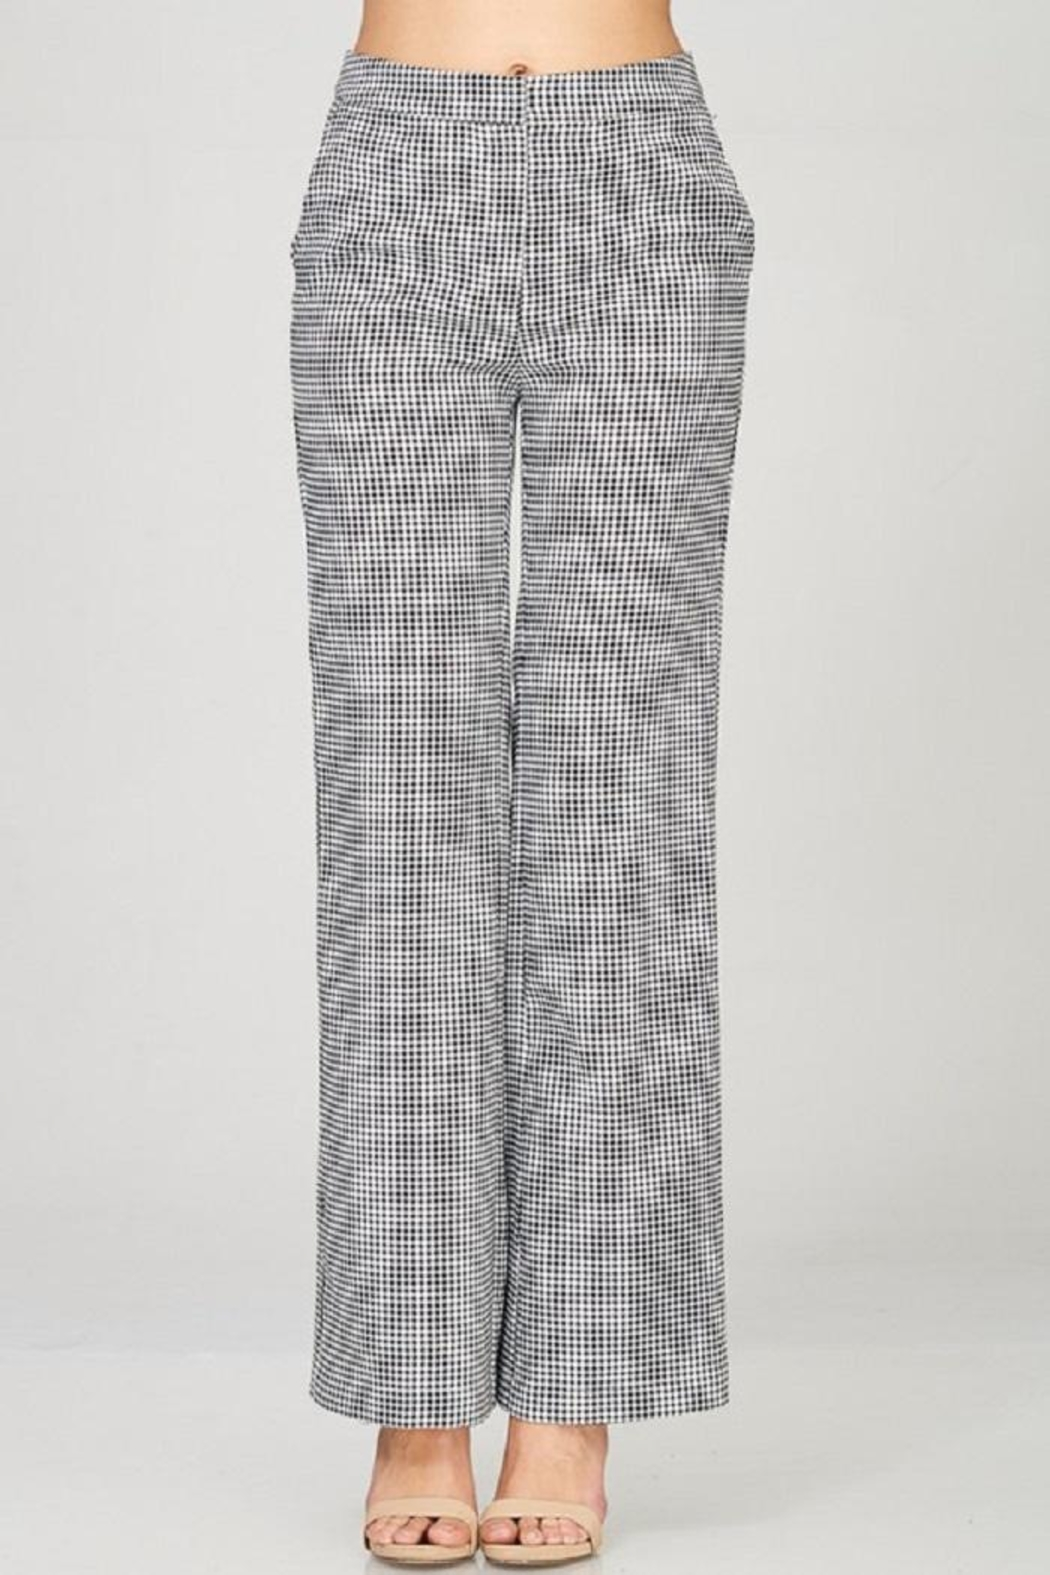 45be8c031008c Emory Park Houndstooth Pants from New York by Dor L Dor — Shoptiques